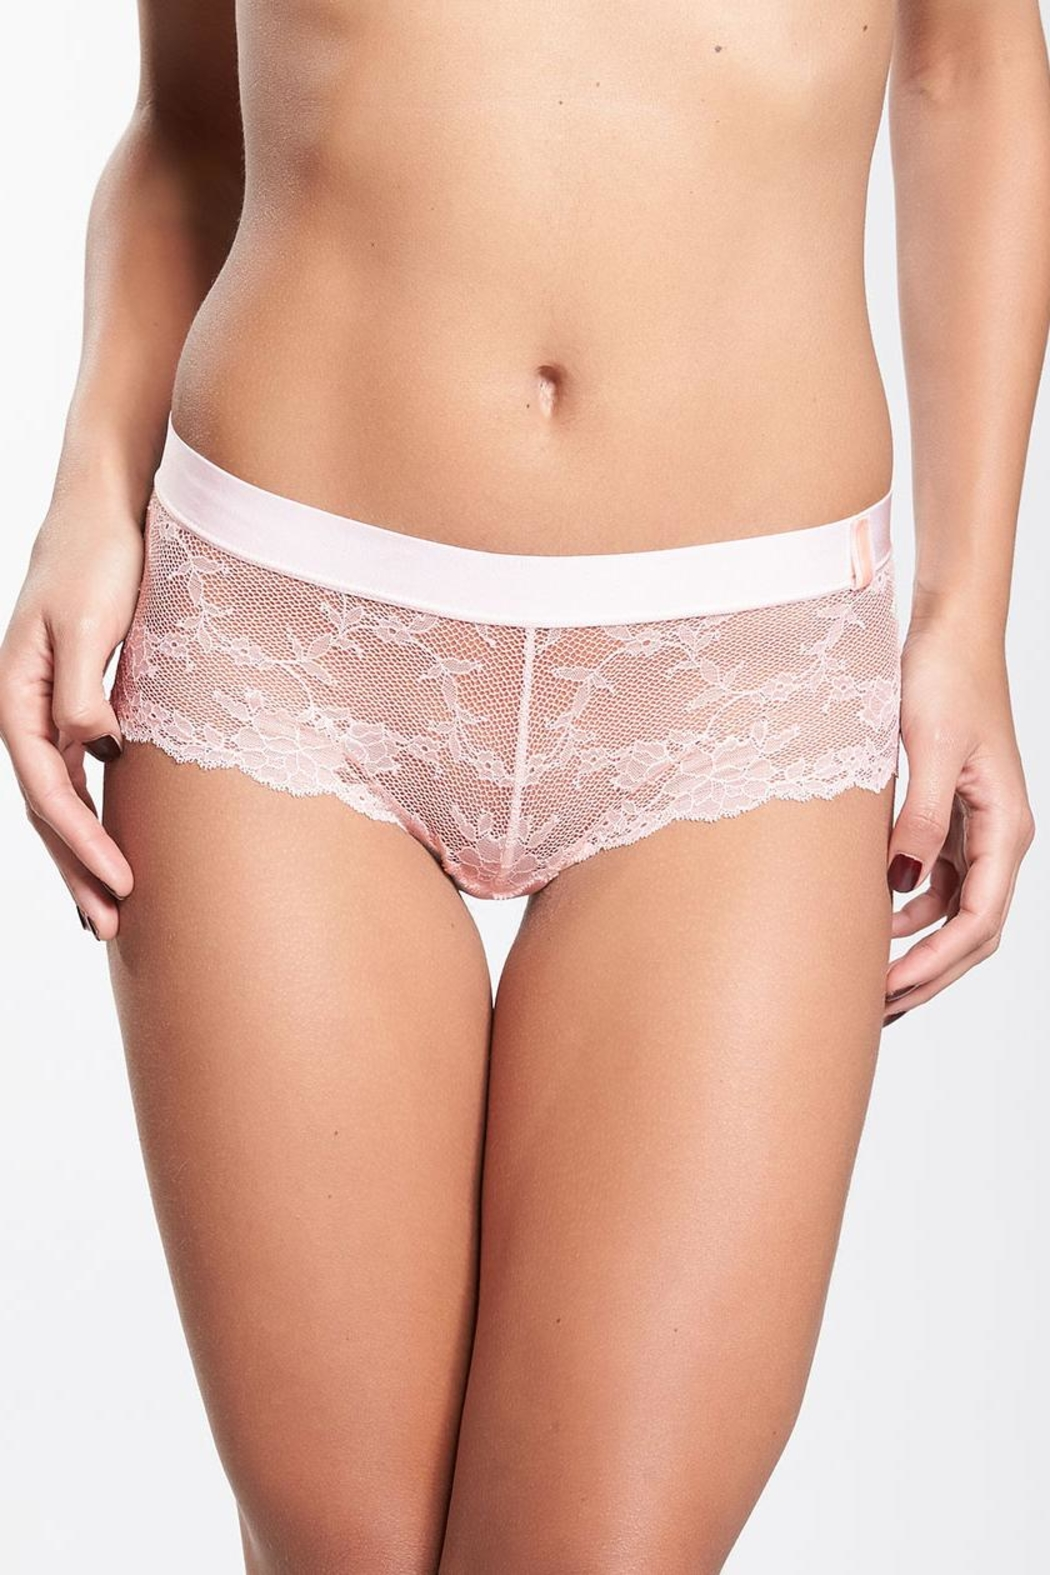 db39608b57f08 Chantelle Everyday Lace Shorty from Canada by Esprit de la Femme ...